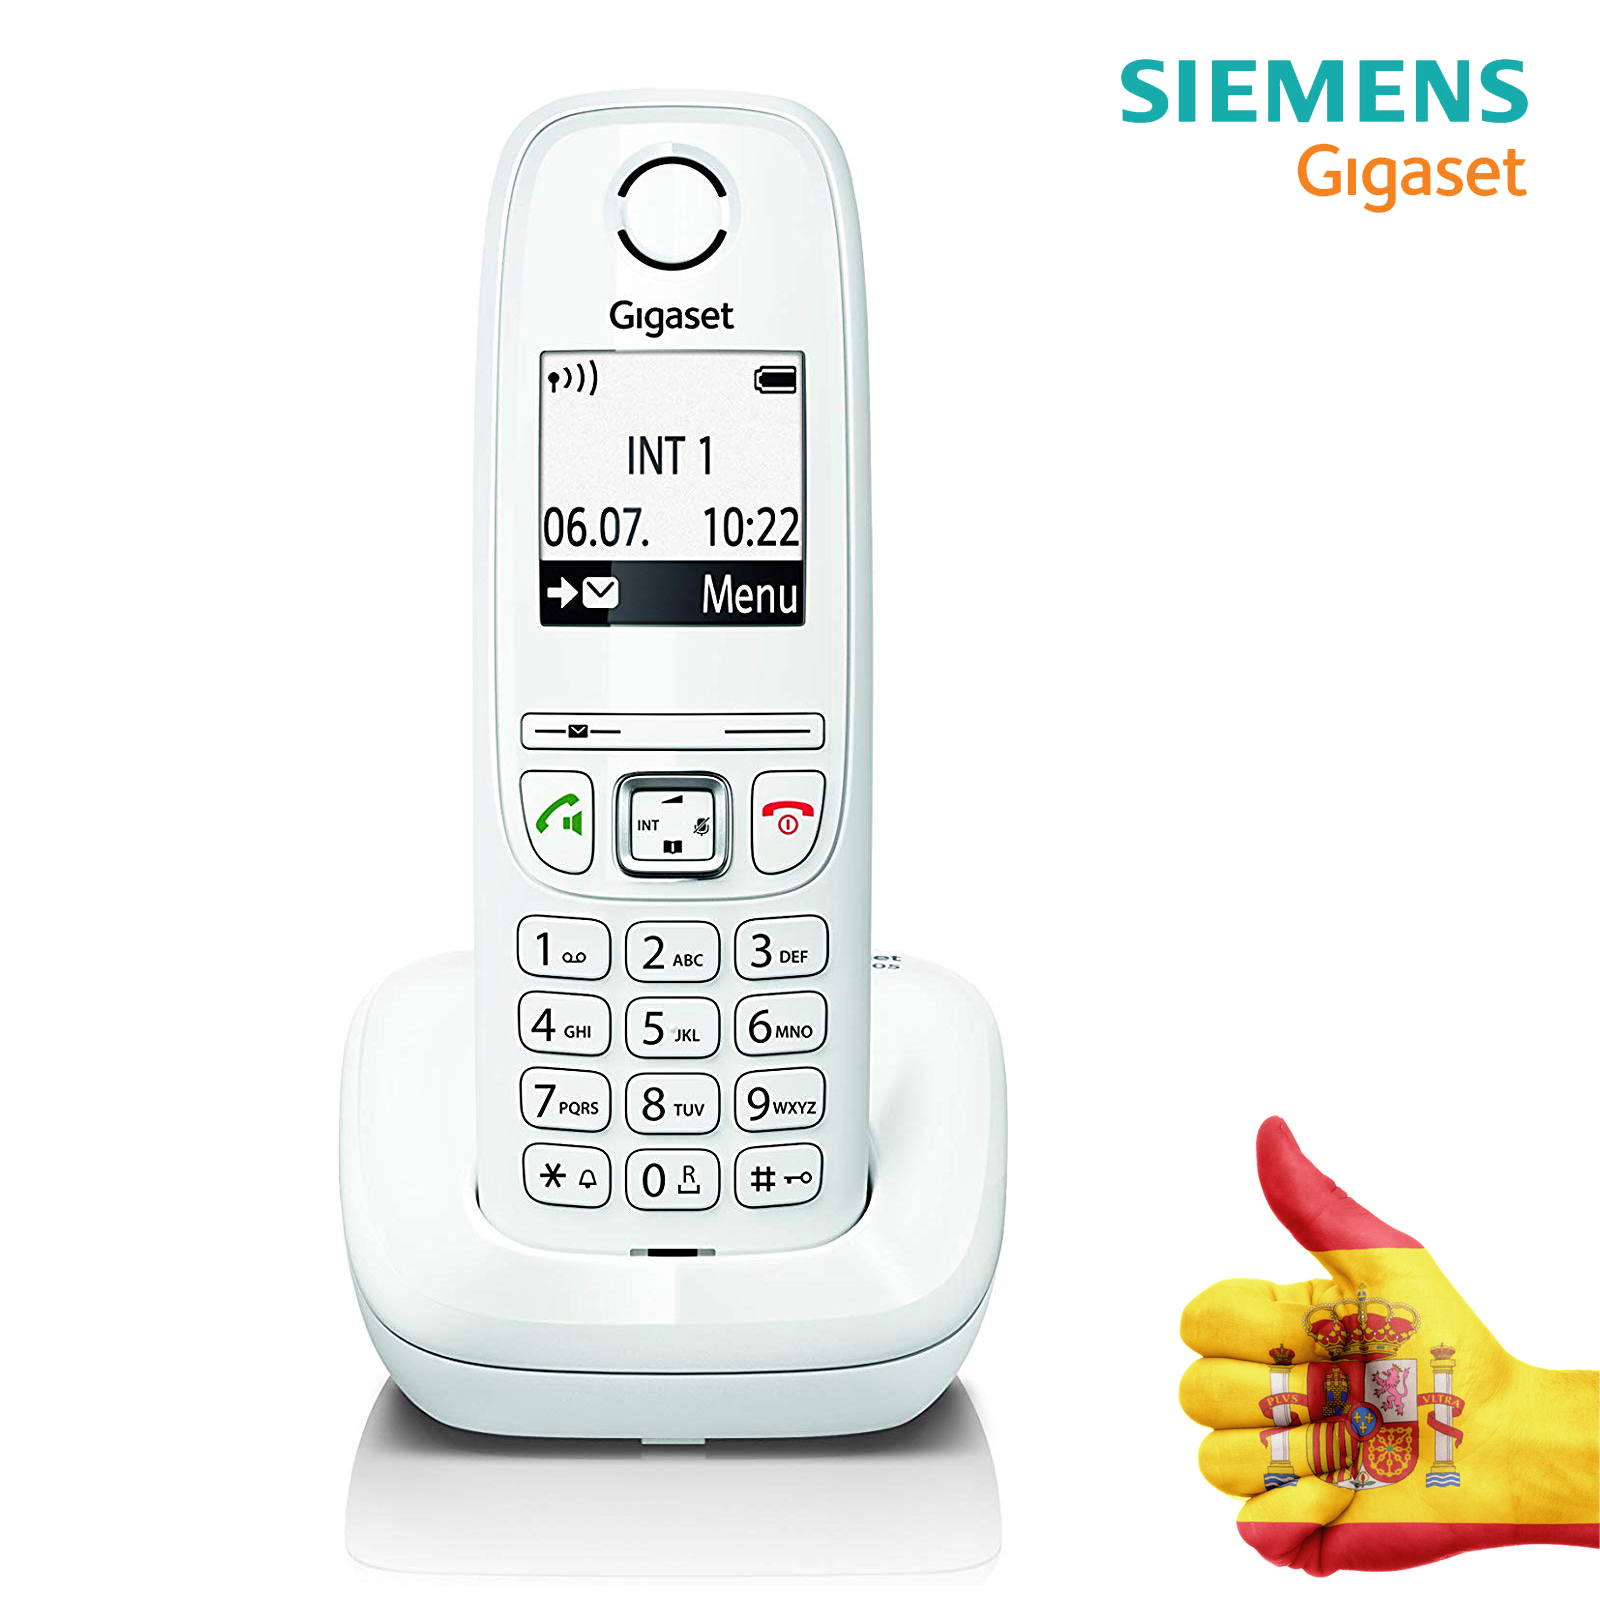 Gigaset AS405-Cordless Phone With Handsfree, Great Screen With Lyrics Giants, Agenda 100 Contacts, Color White